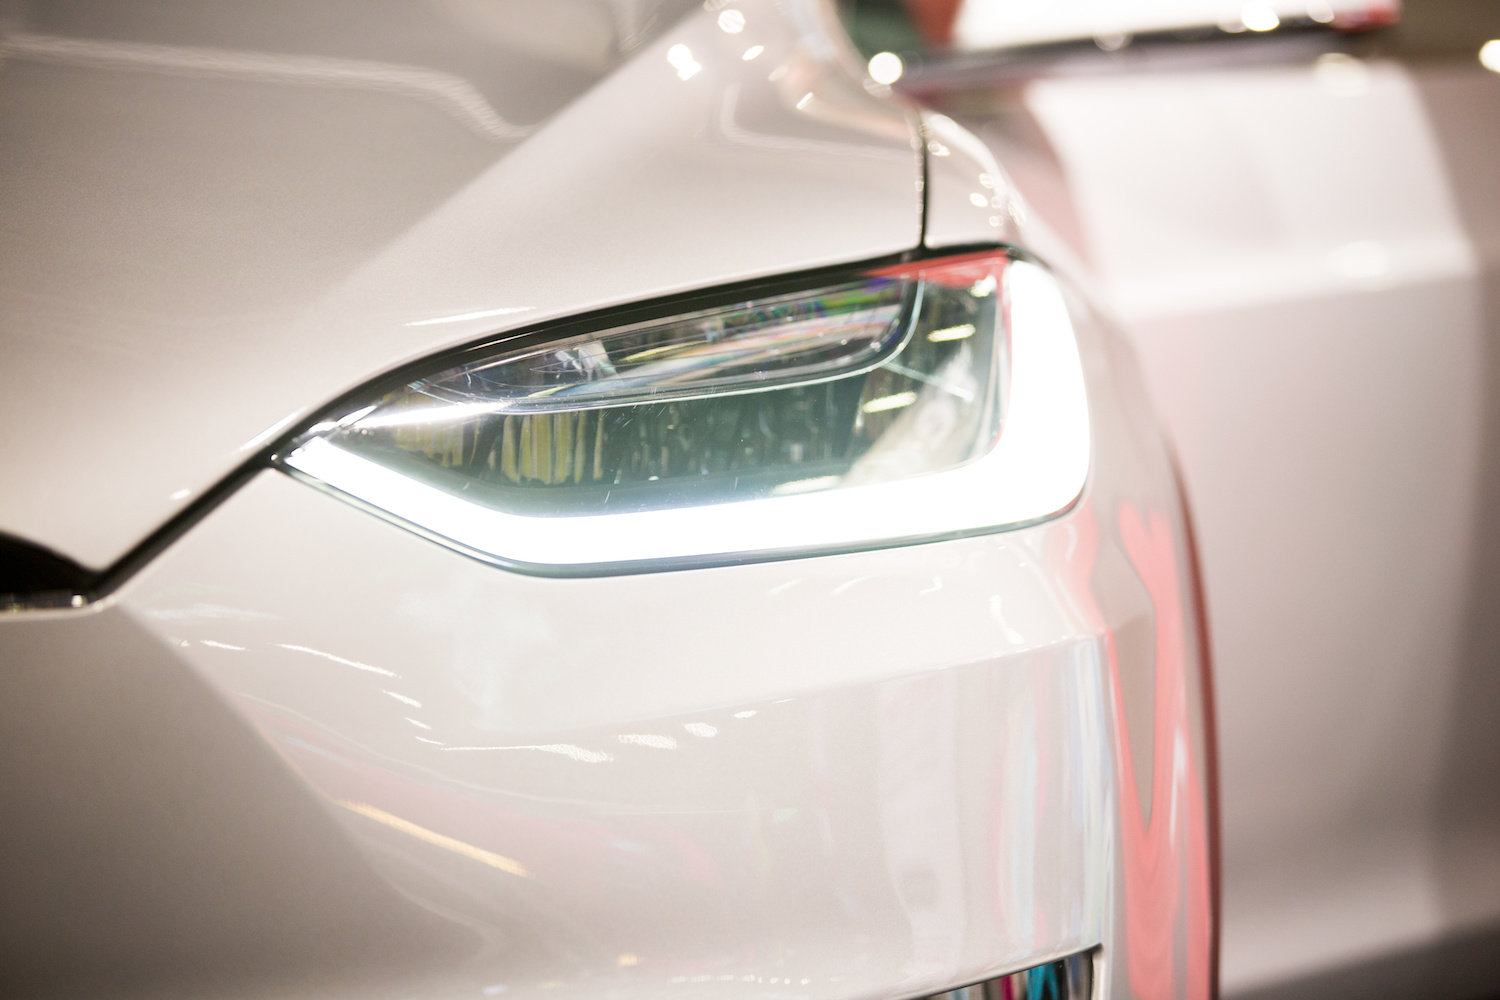 The body of a electric car. Hood, headlamp, front.